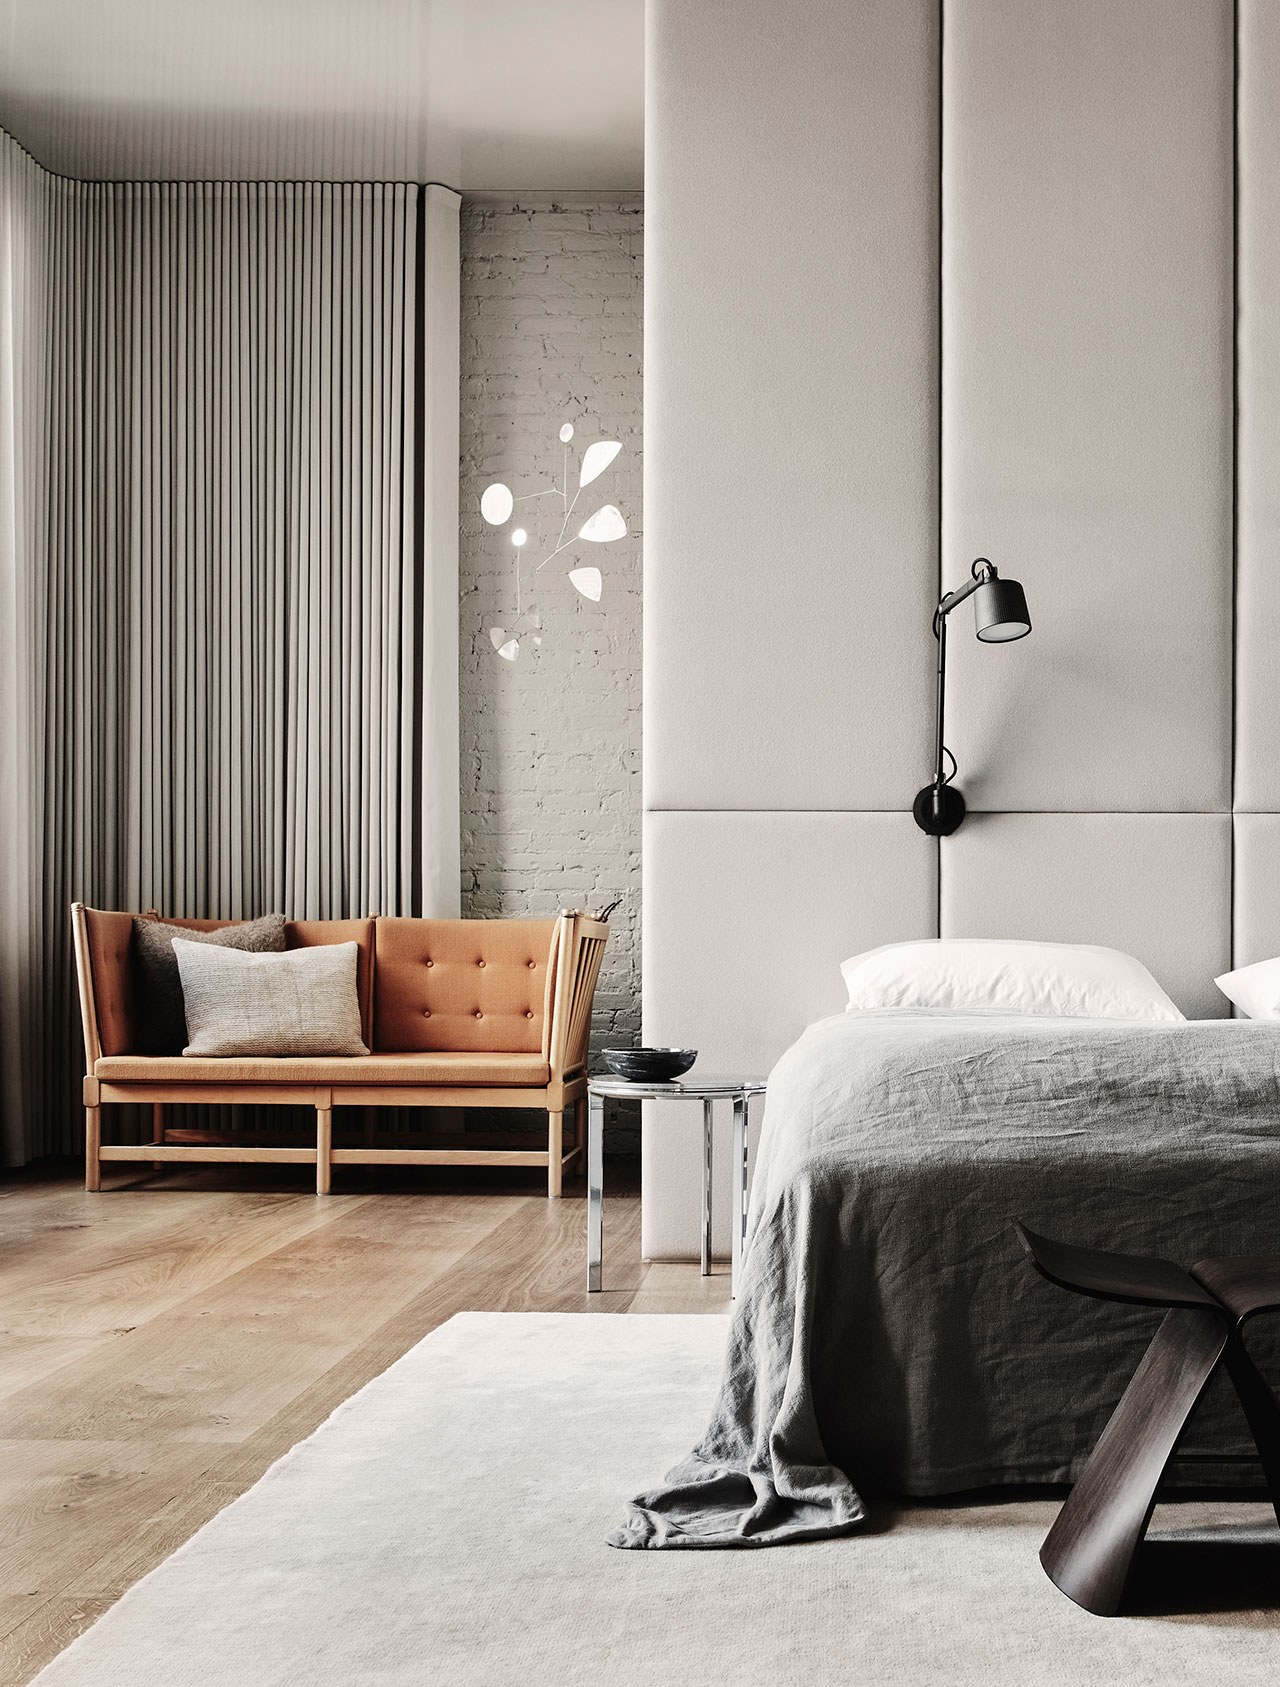 """Photography by Adrian Gaut.Styling by Colin King. © Vipp Featured: Børge Mogensen sofa with Raf Simons fabric, Upholstered fabric wall by Elie Chaker, Handmade silver mobile by Lappalainen, Vipp Wall Lamps, Hastens bed, Vipp Side Table, Vipp Rug, Sori Yanagi Stool, Farrow & Ball """"Hardwich White"""" paint."""